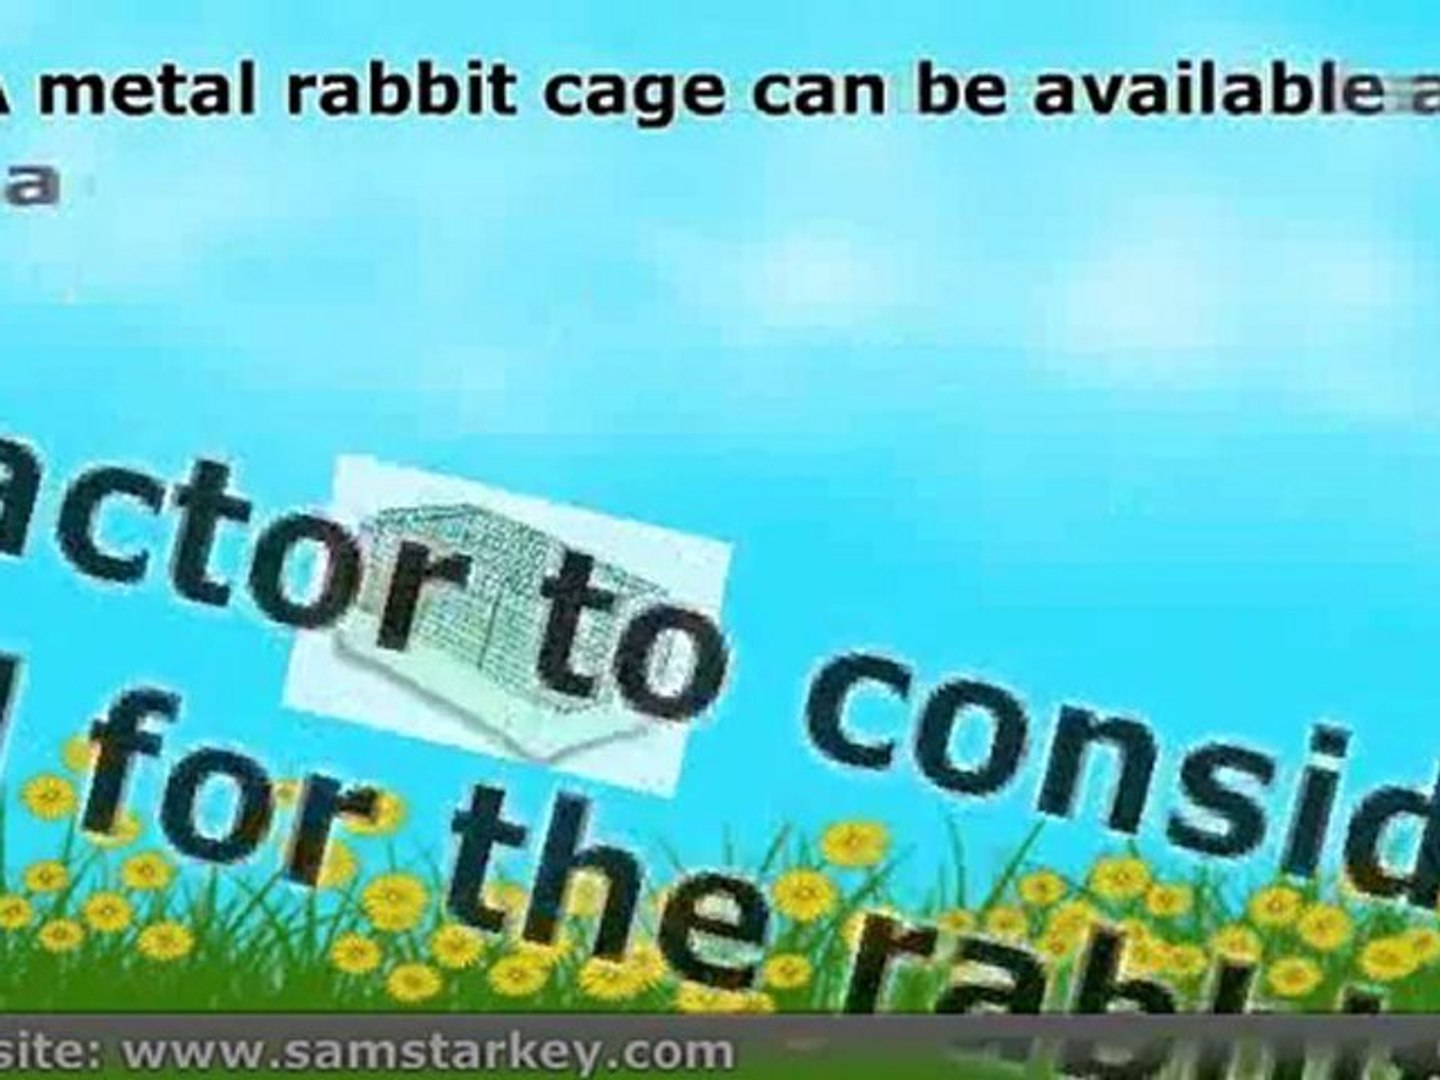 3 factors to consider when buying rabbit cages